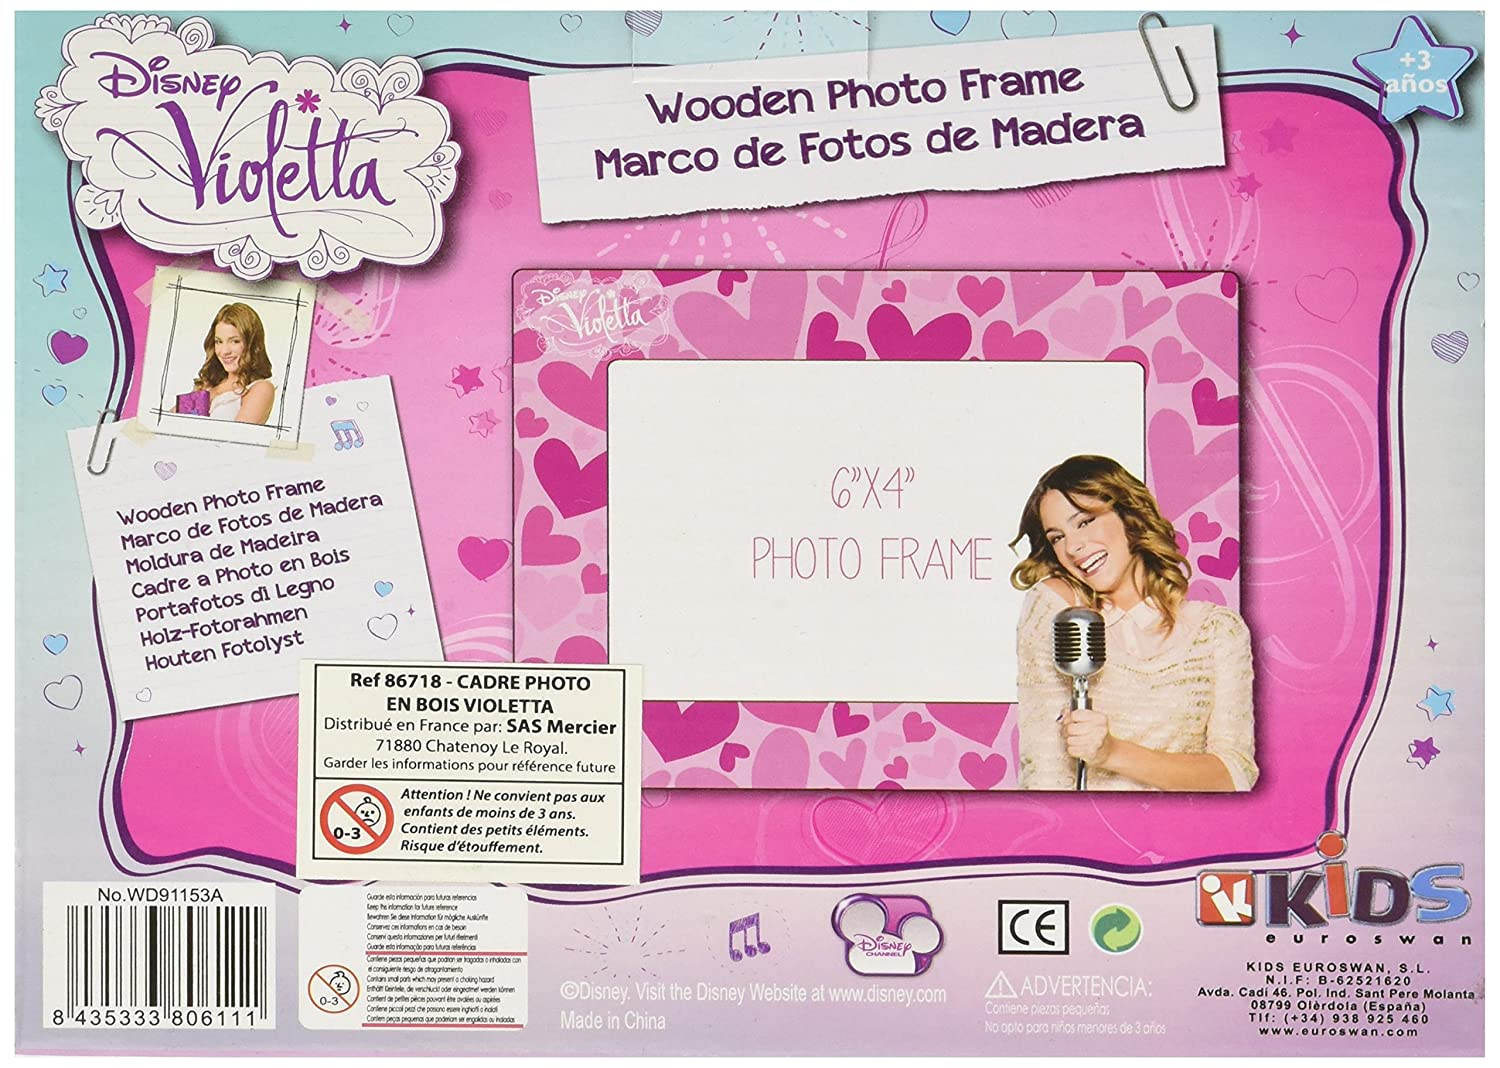 Disney Violetta Wooden Picture Photo Frames: Amazon.co.uk: Toys & Games